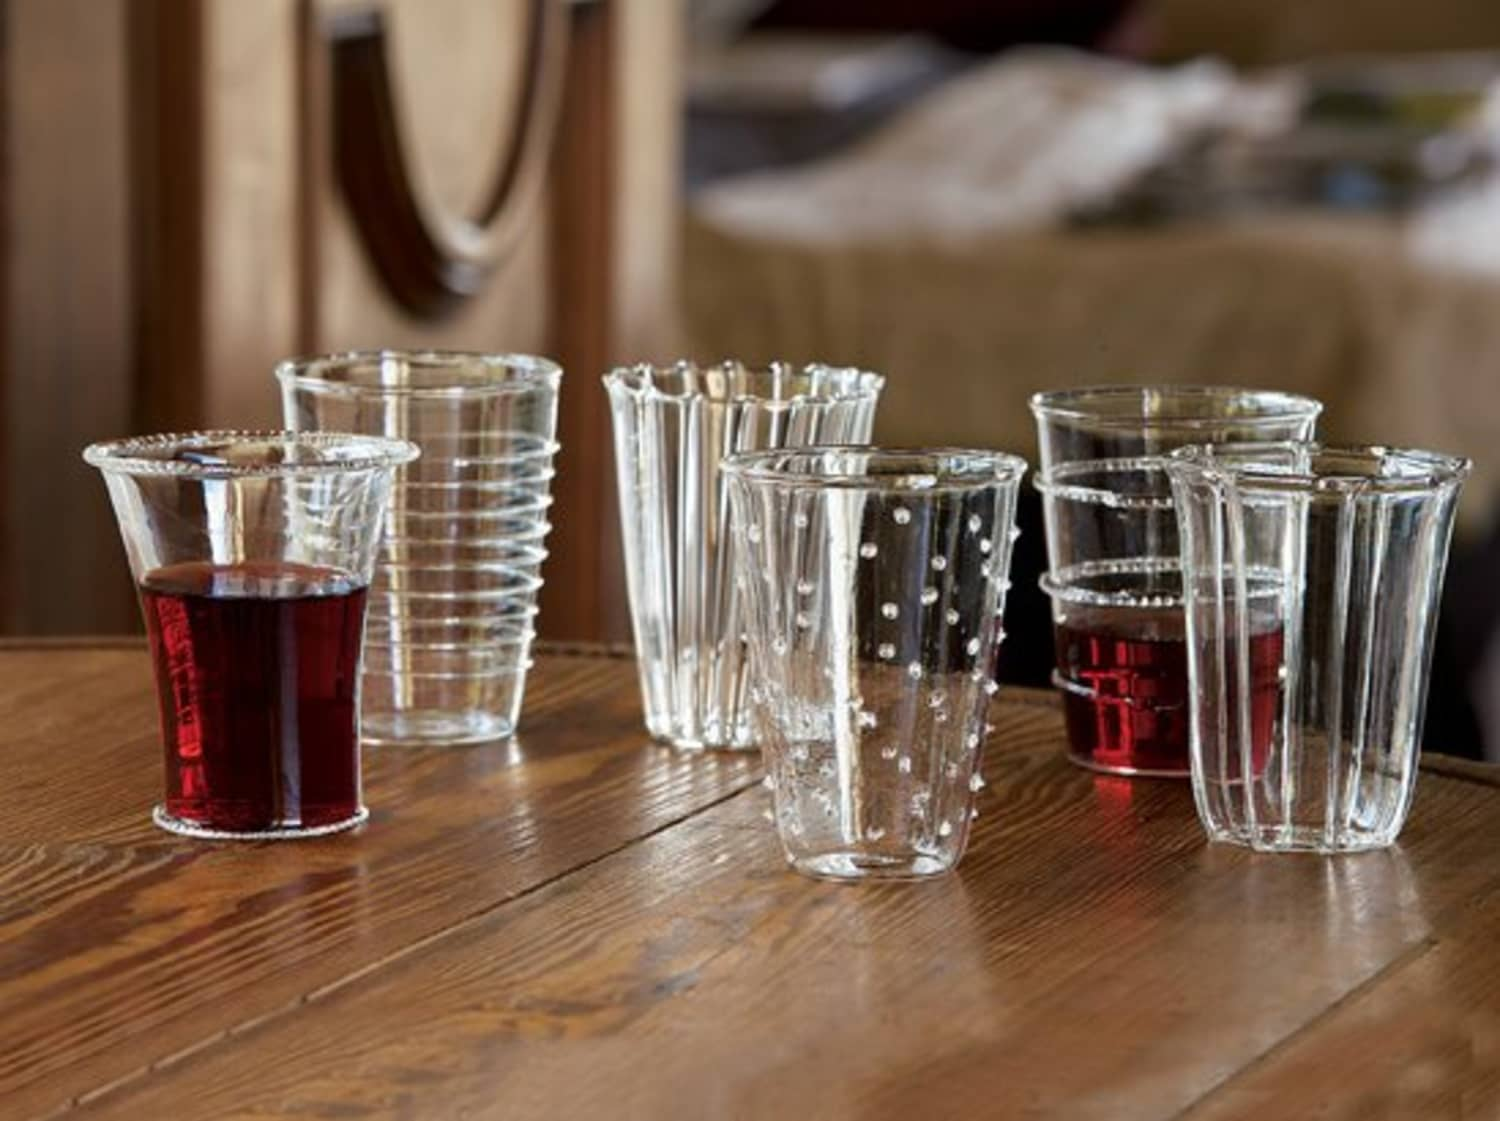 Venetian Style Glass Tumblers From Napastyle Kitchn